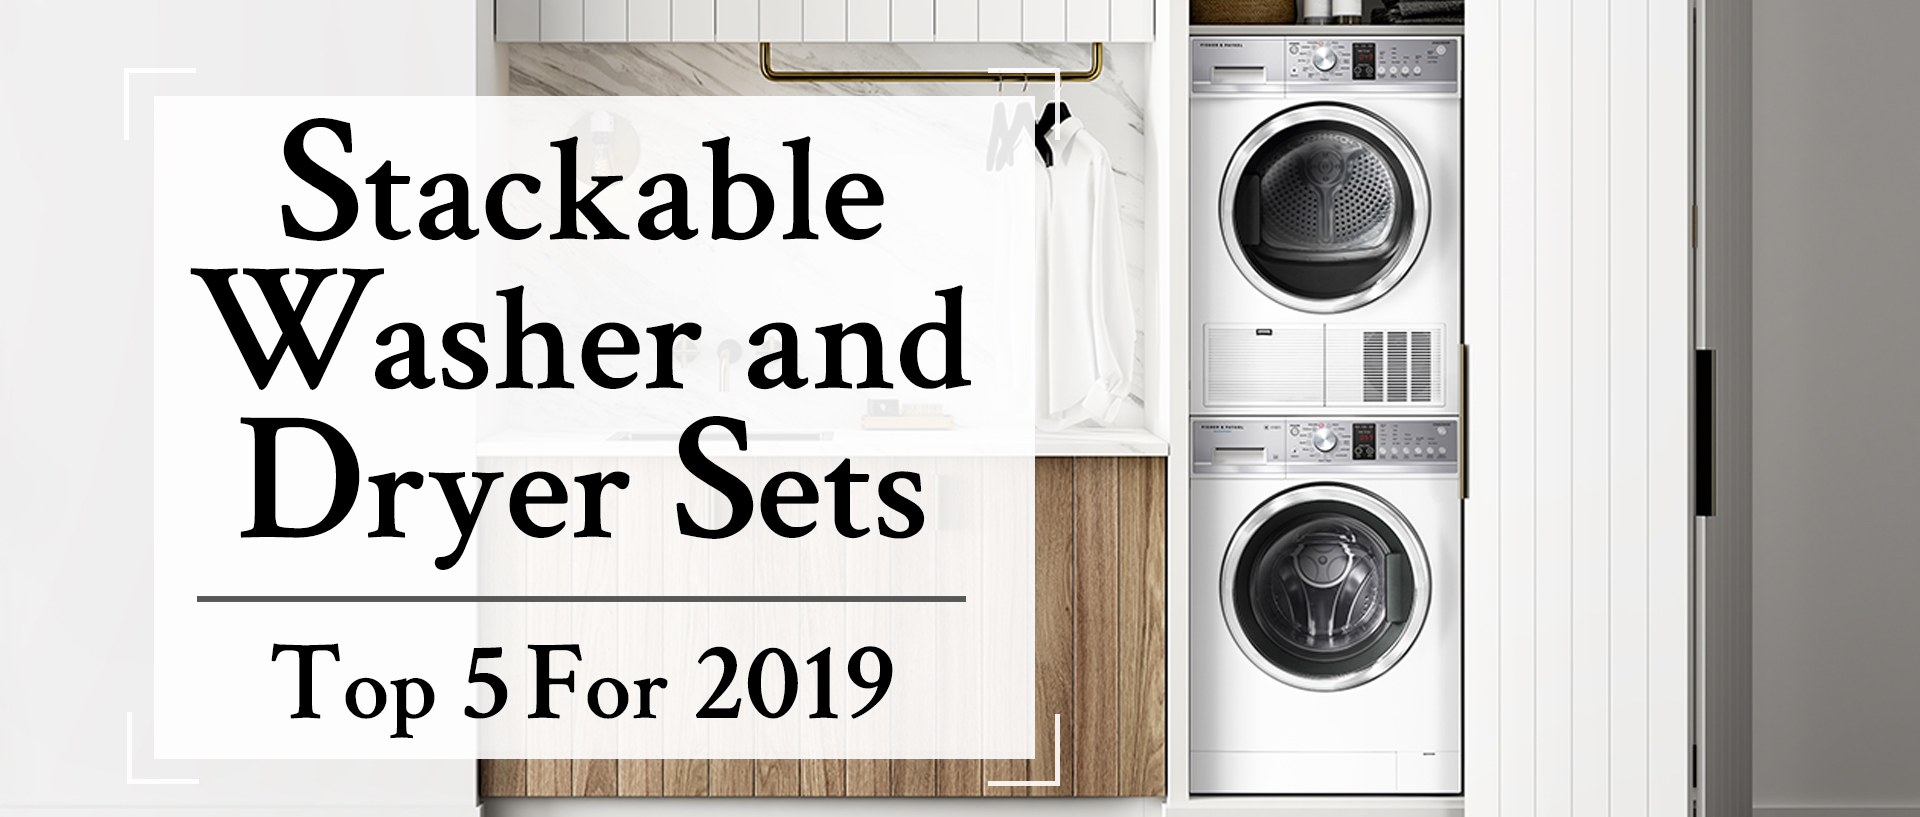 Stackable Washer and Dryer Sets - Top 5 for 2019